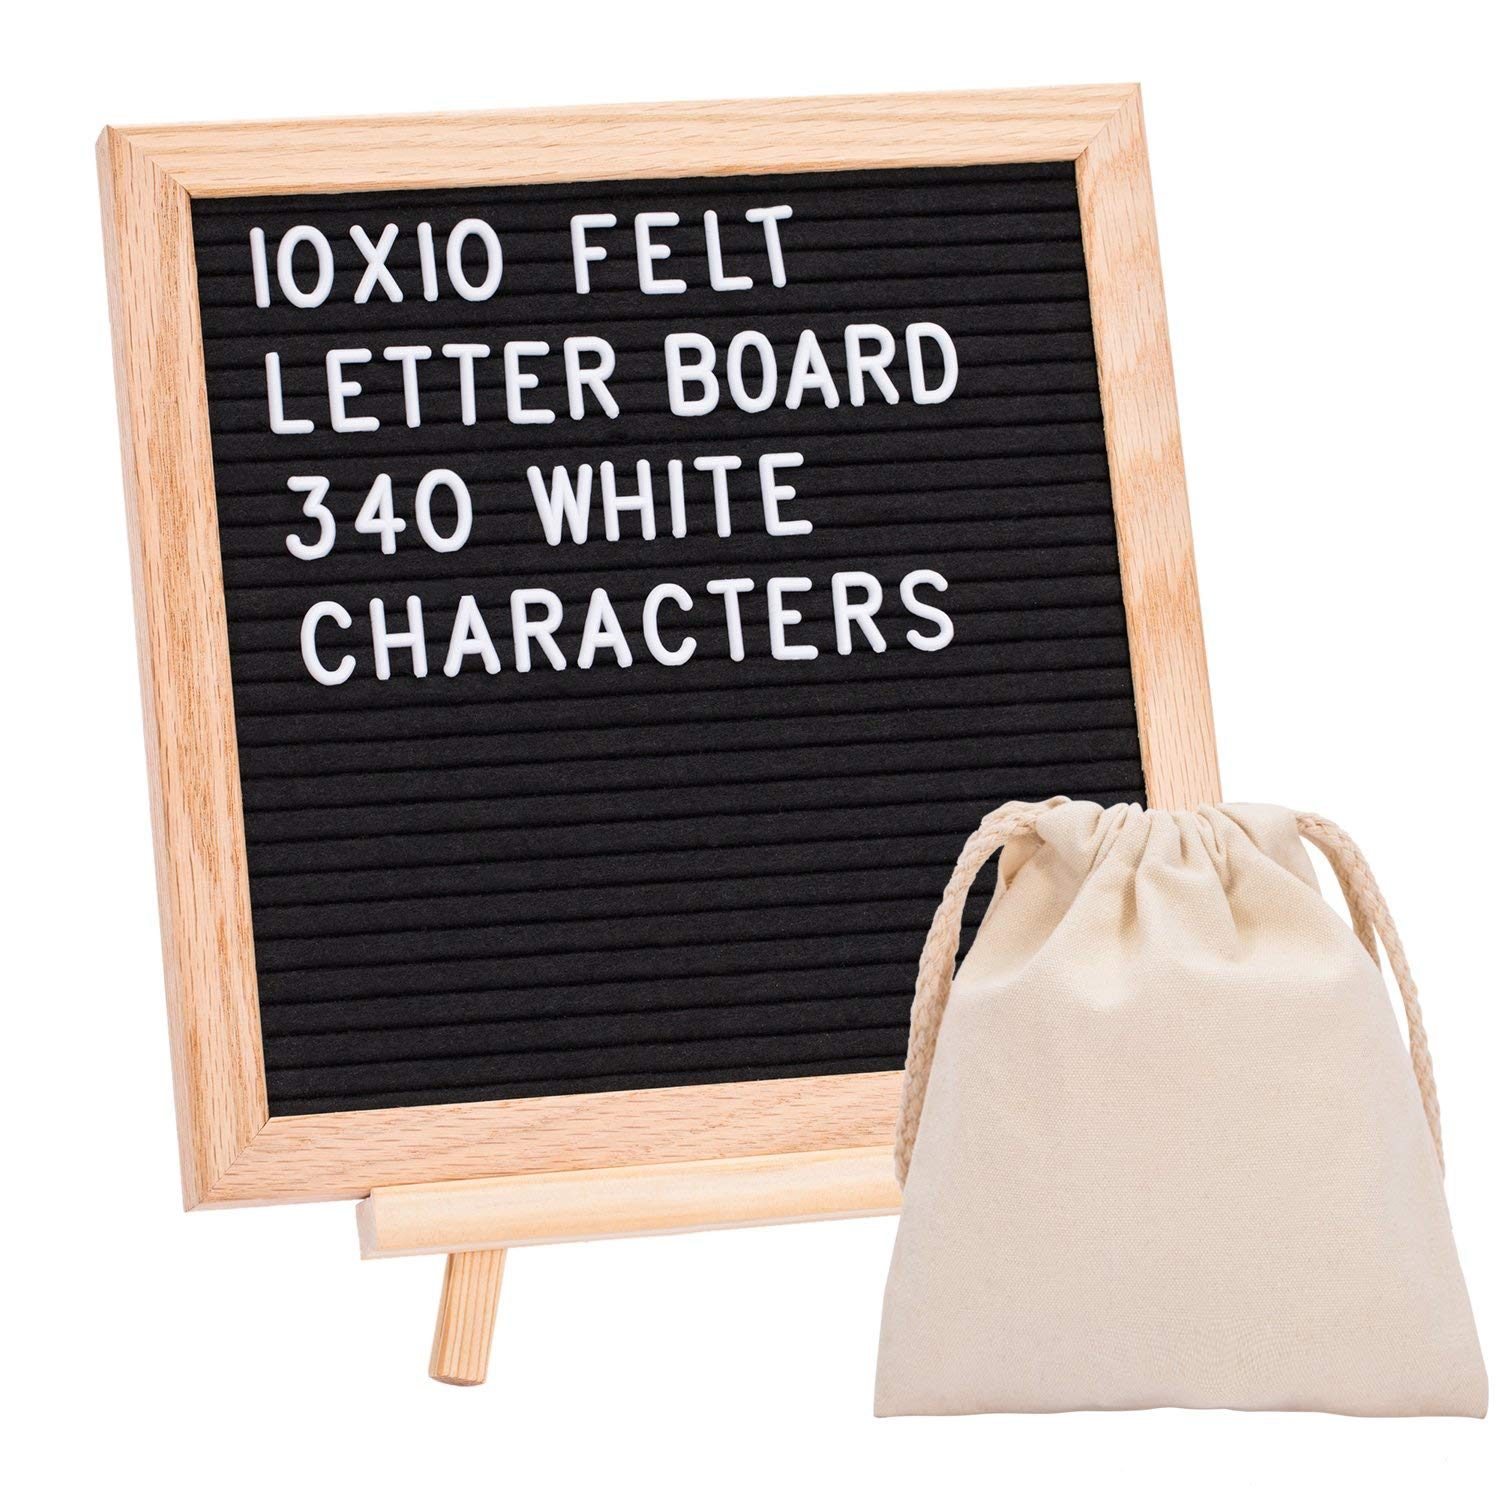 Office & School Supplies Characters For Felt Letter Board 340 Piece Numbers Symbols Alphabets For Changeable Letter Board